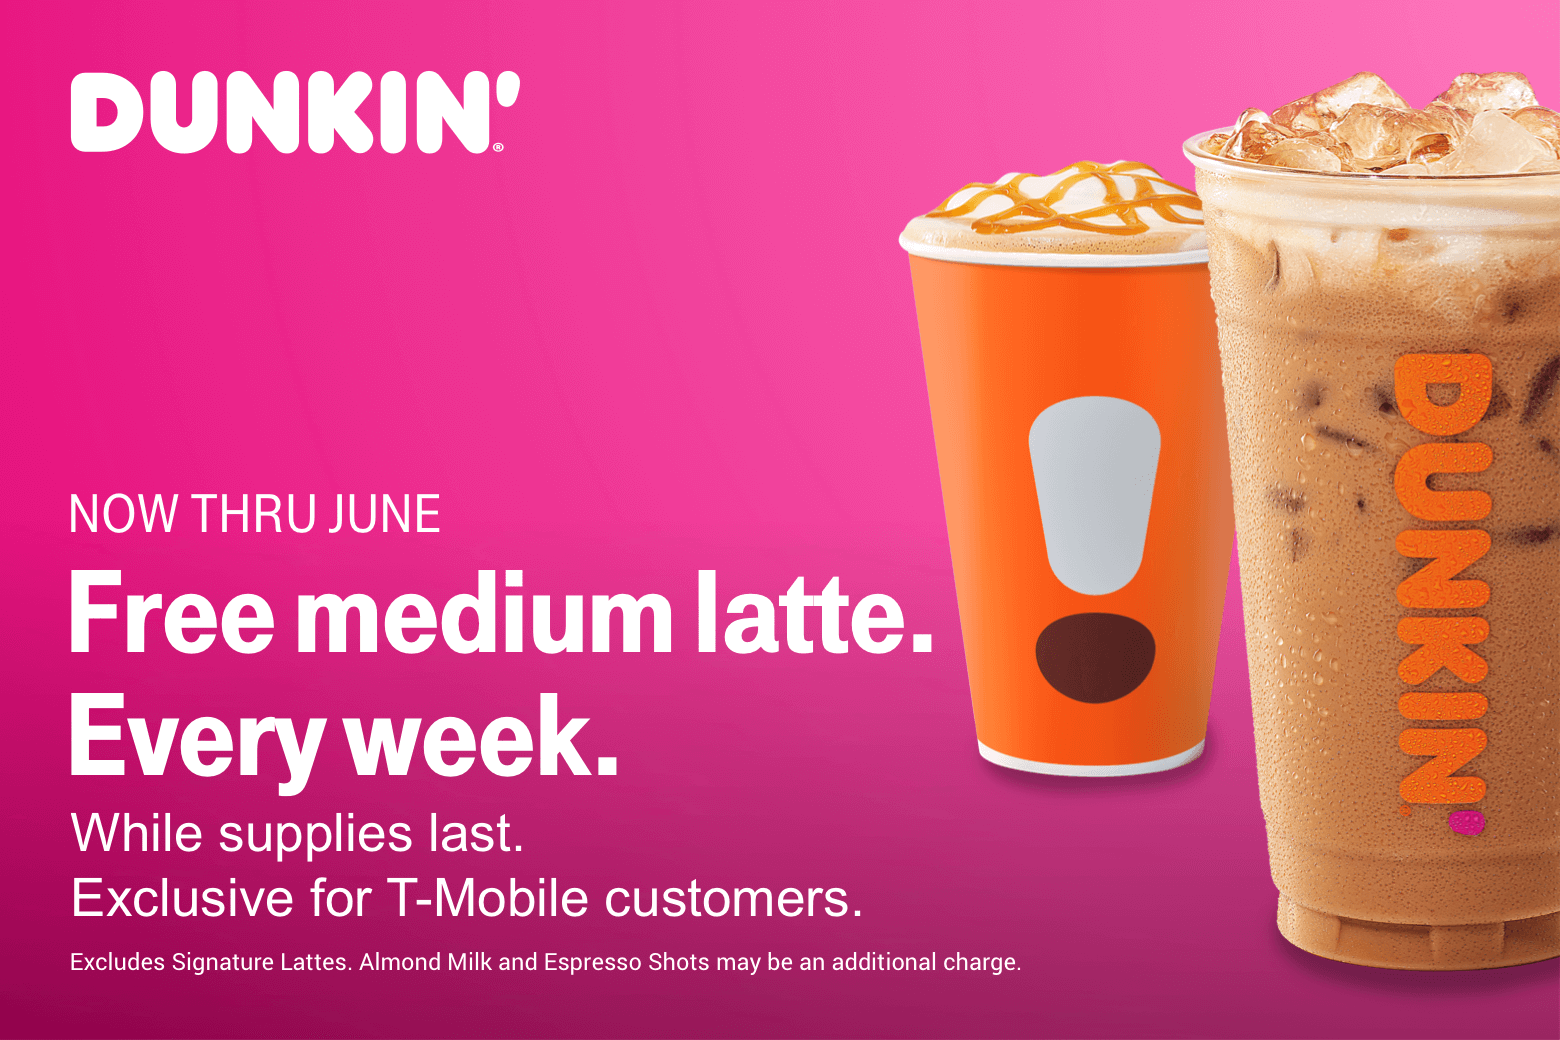 Dunkin'. Now thru June. Free medium latte. Every week. While supplies last. Exclusive for T-Mobile customers. Excludes signature lattes. Almond milk and espresso shots may be an additional charge.